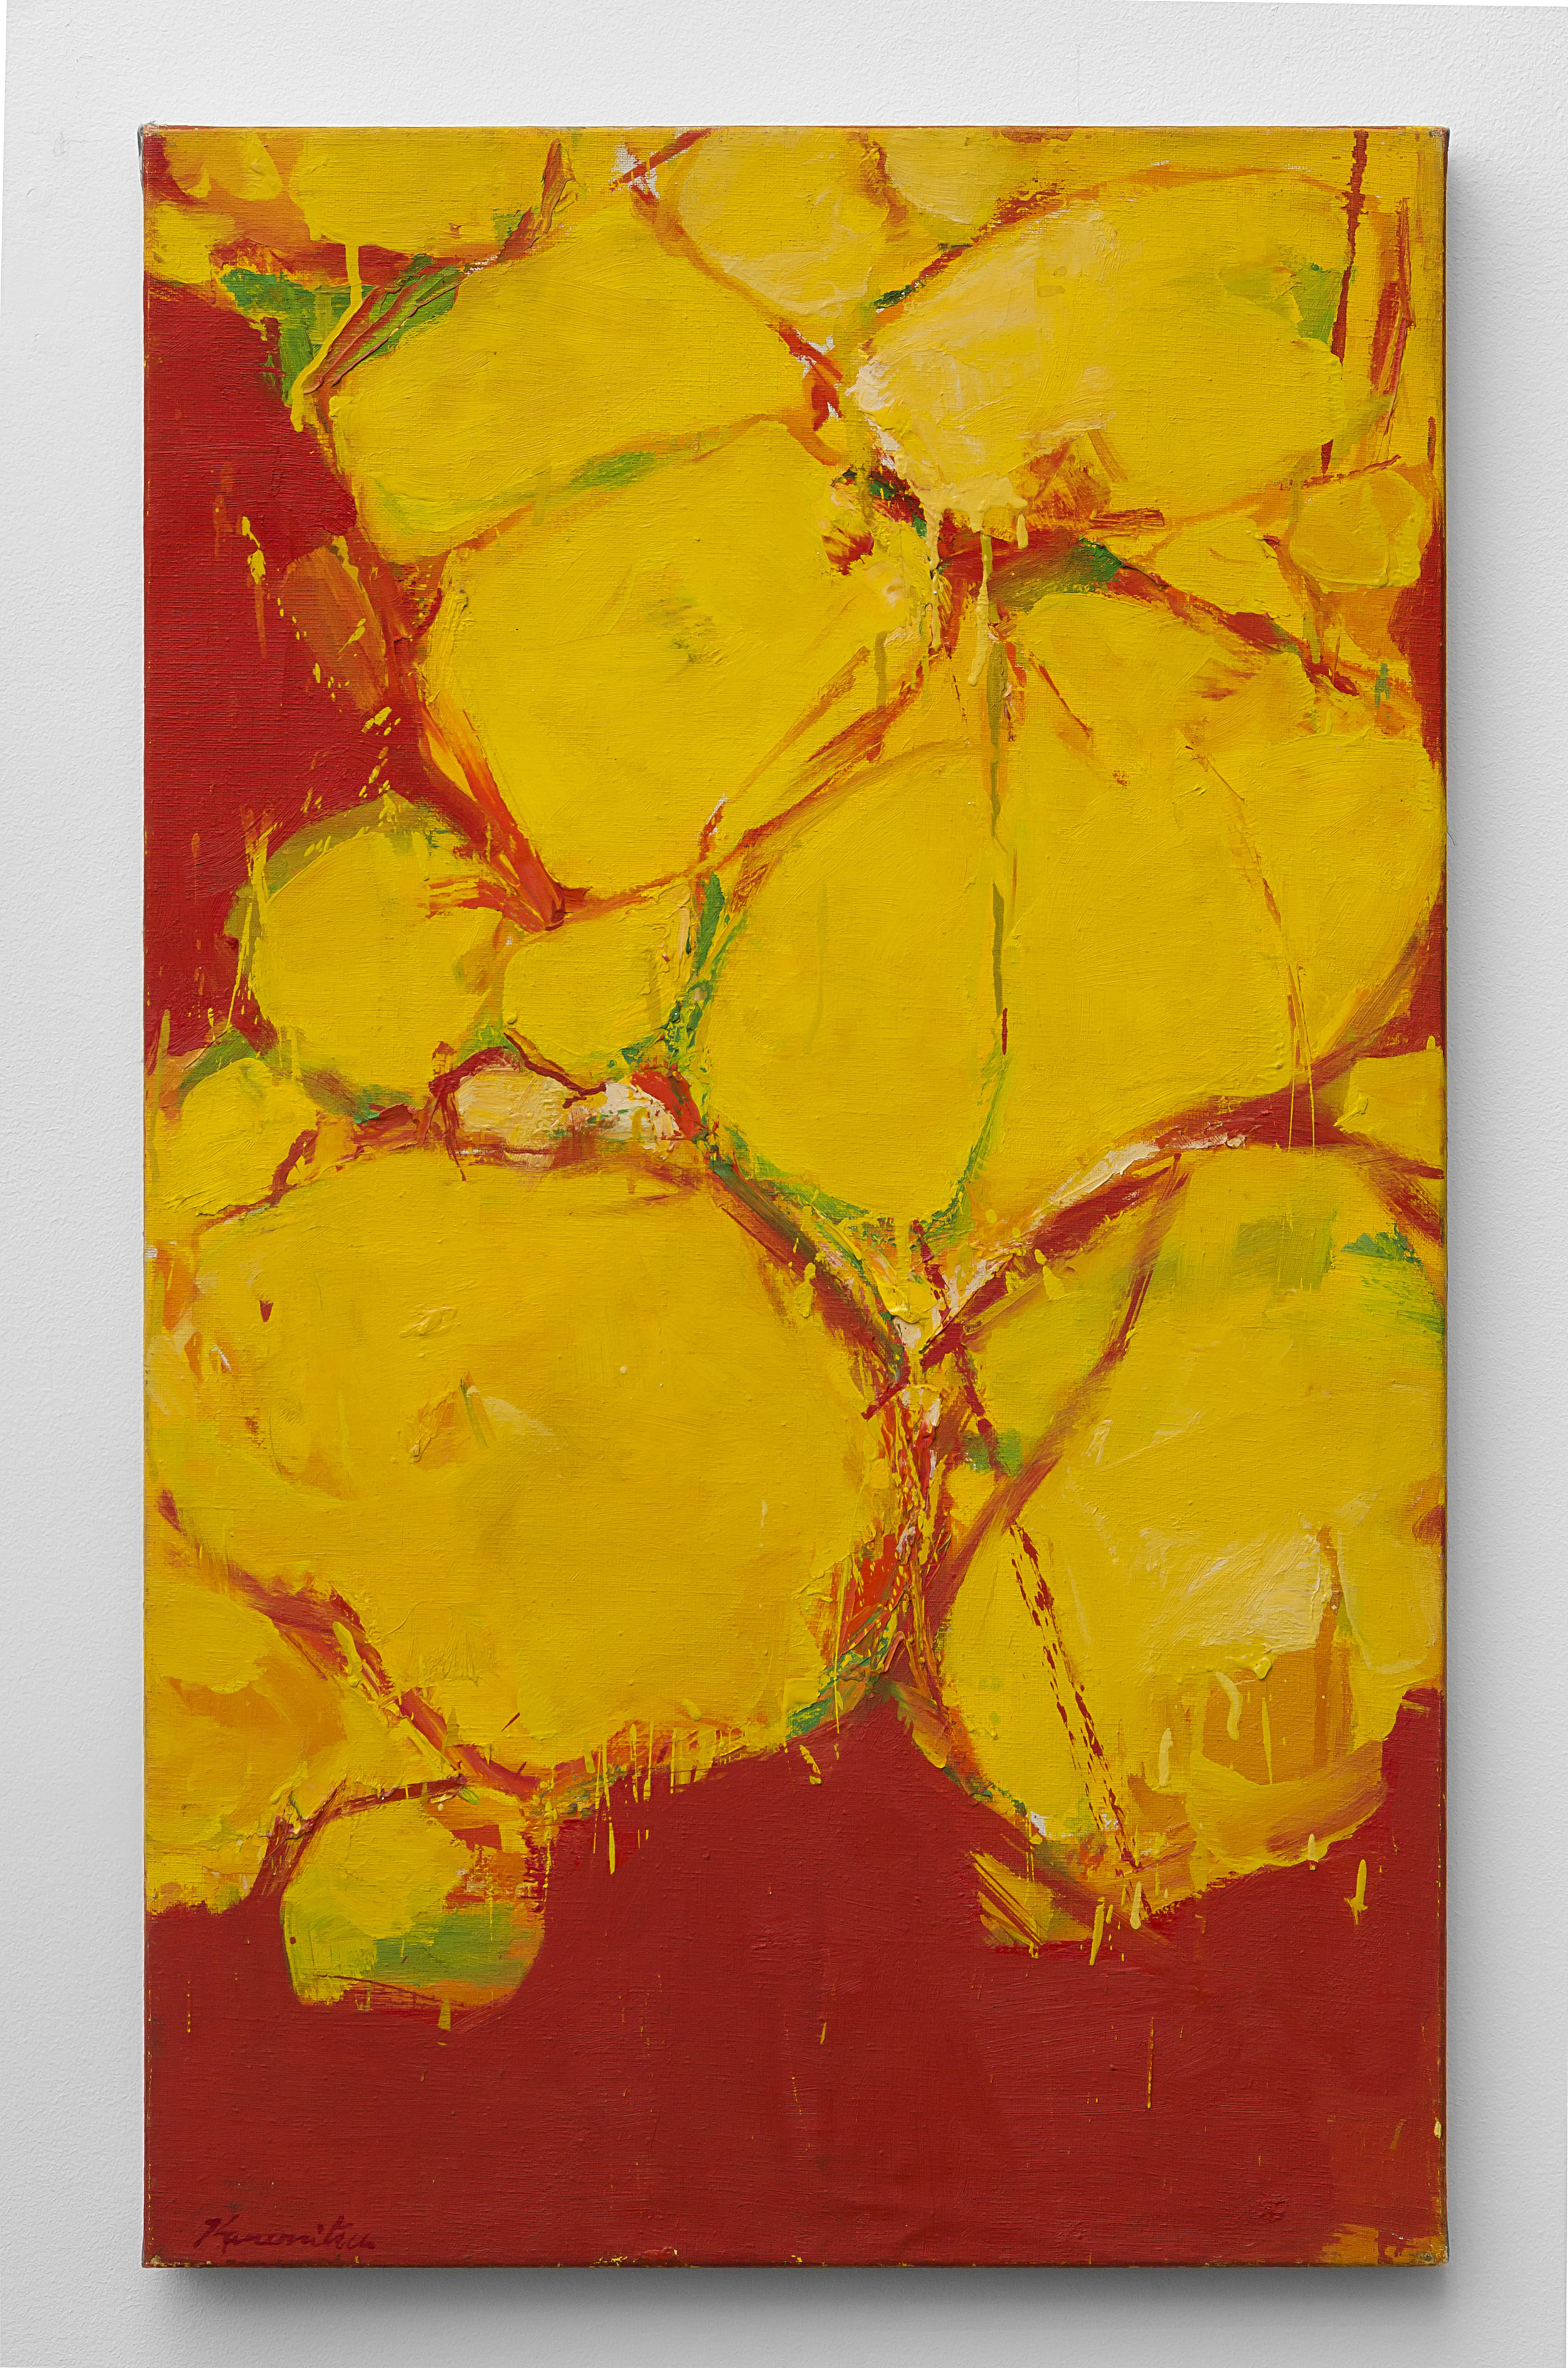 Untitled (Yellow)   1960  acrylic on canvas  30 x 18 inches, 76.2 x 45.7